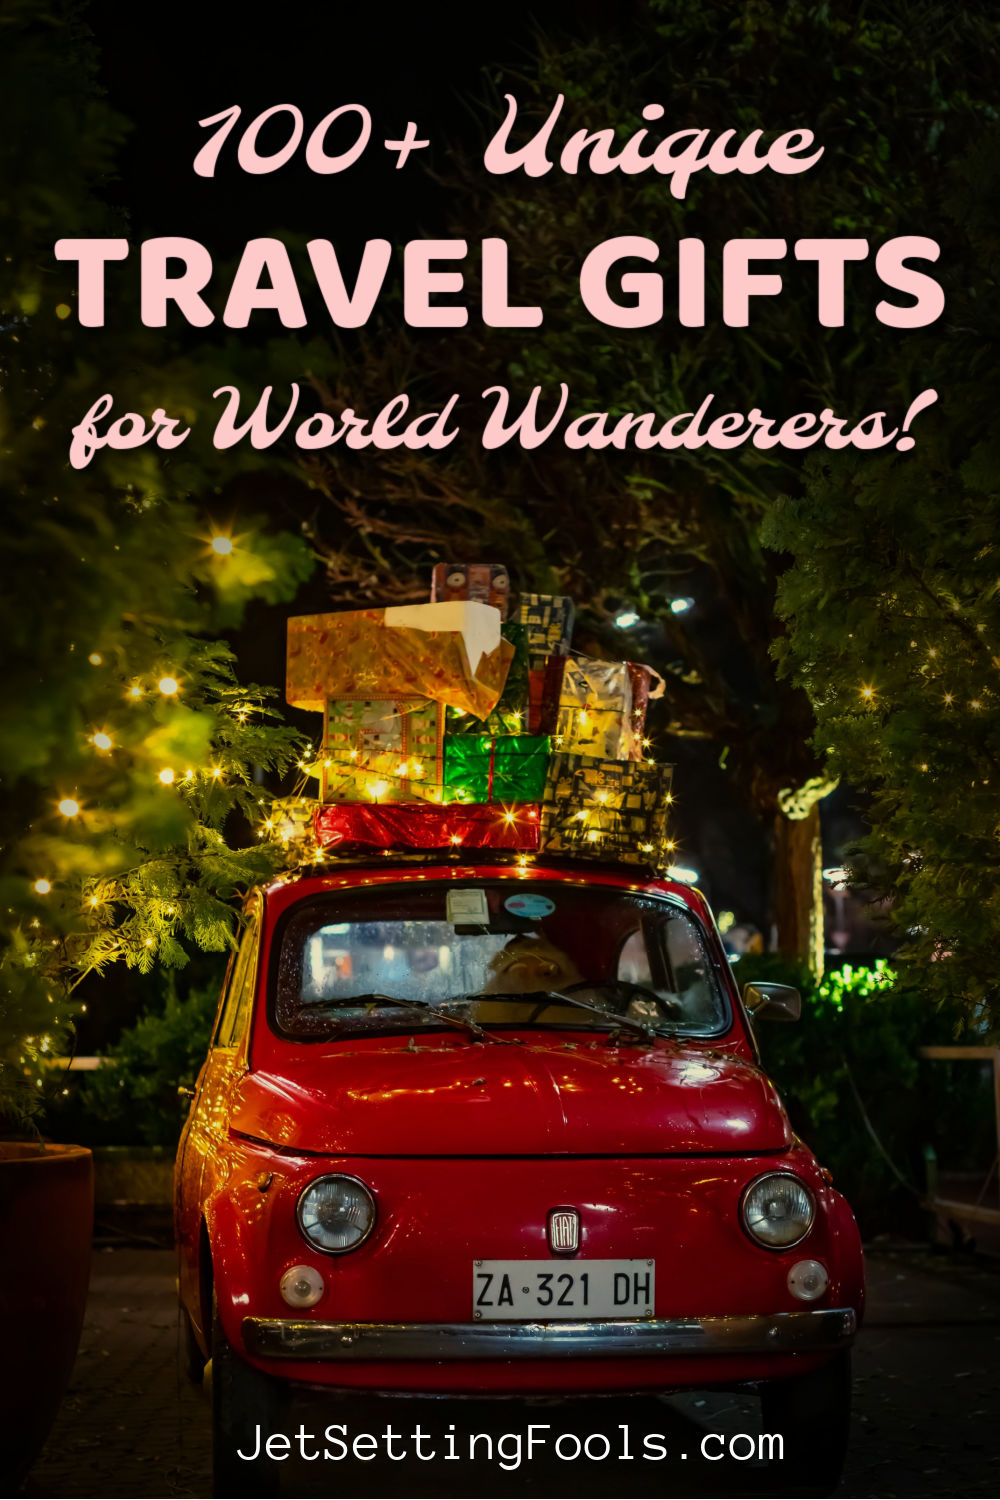 100 Unique Travel Gifts by JetSettingFools.com